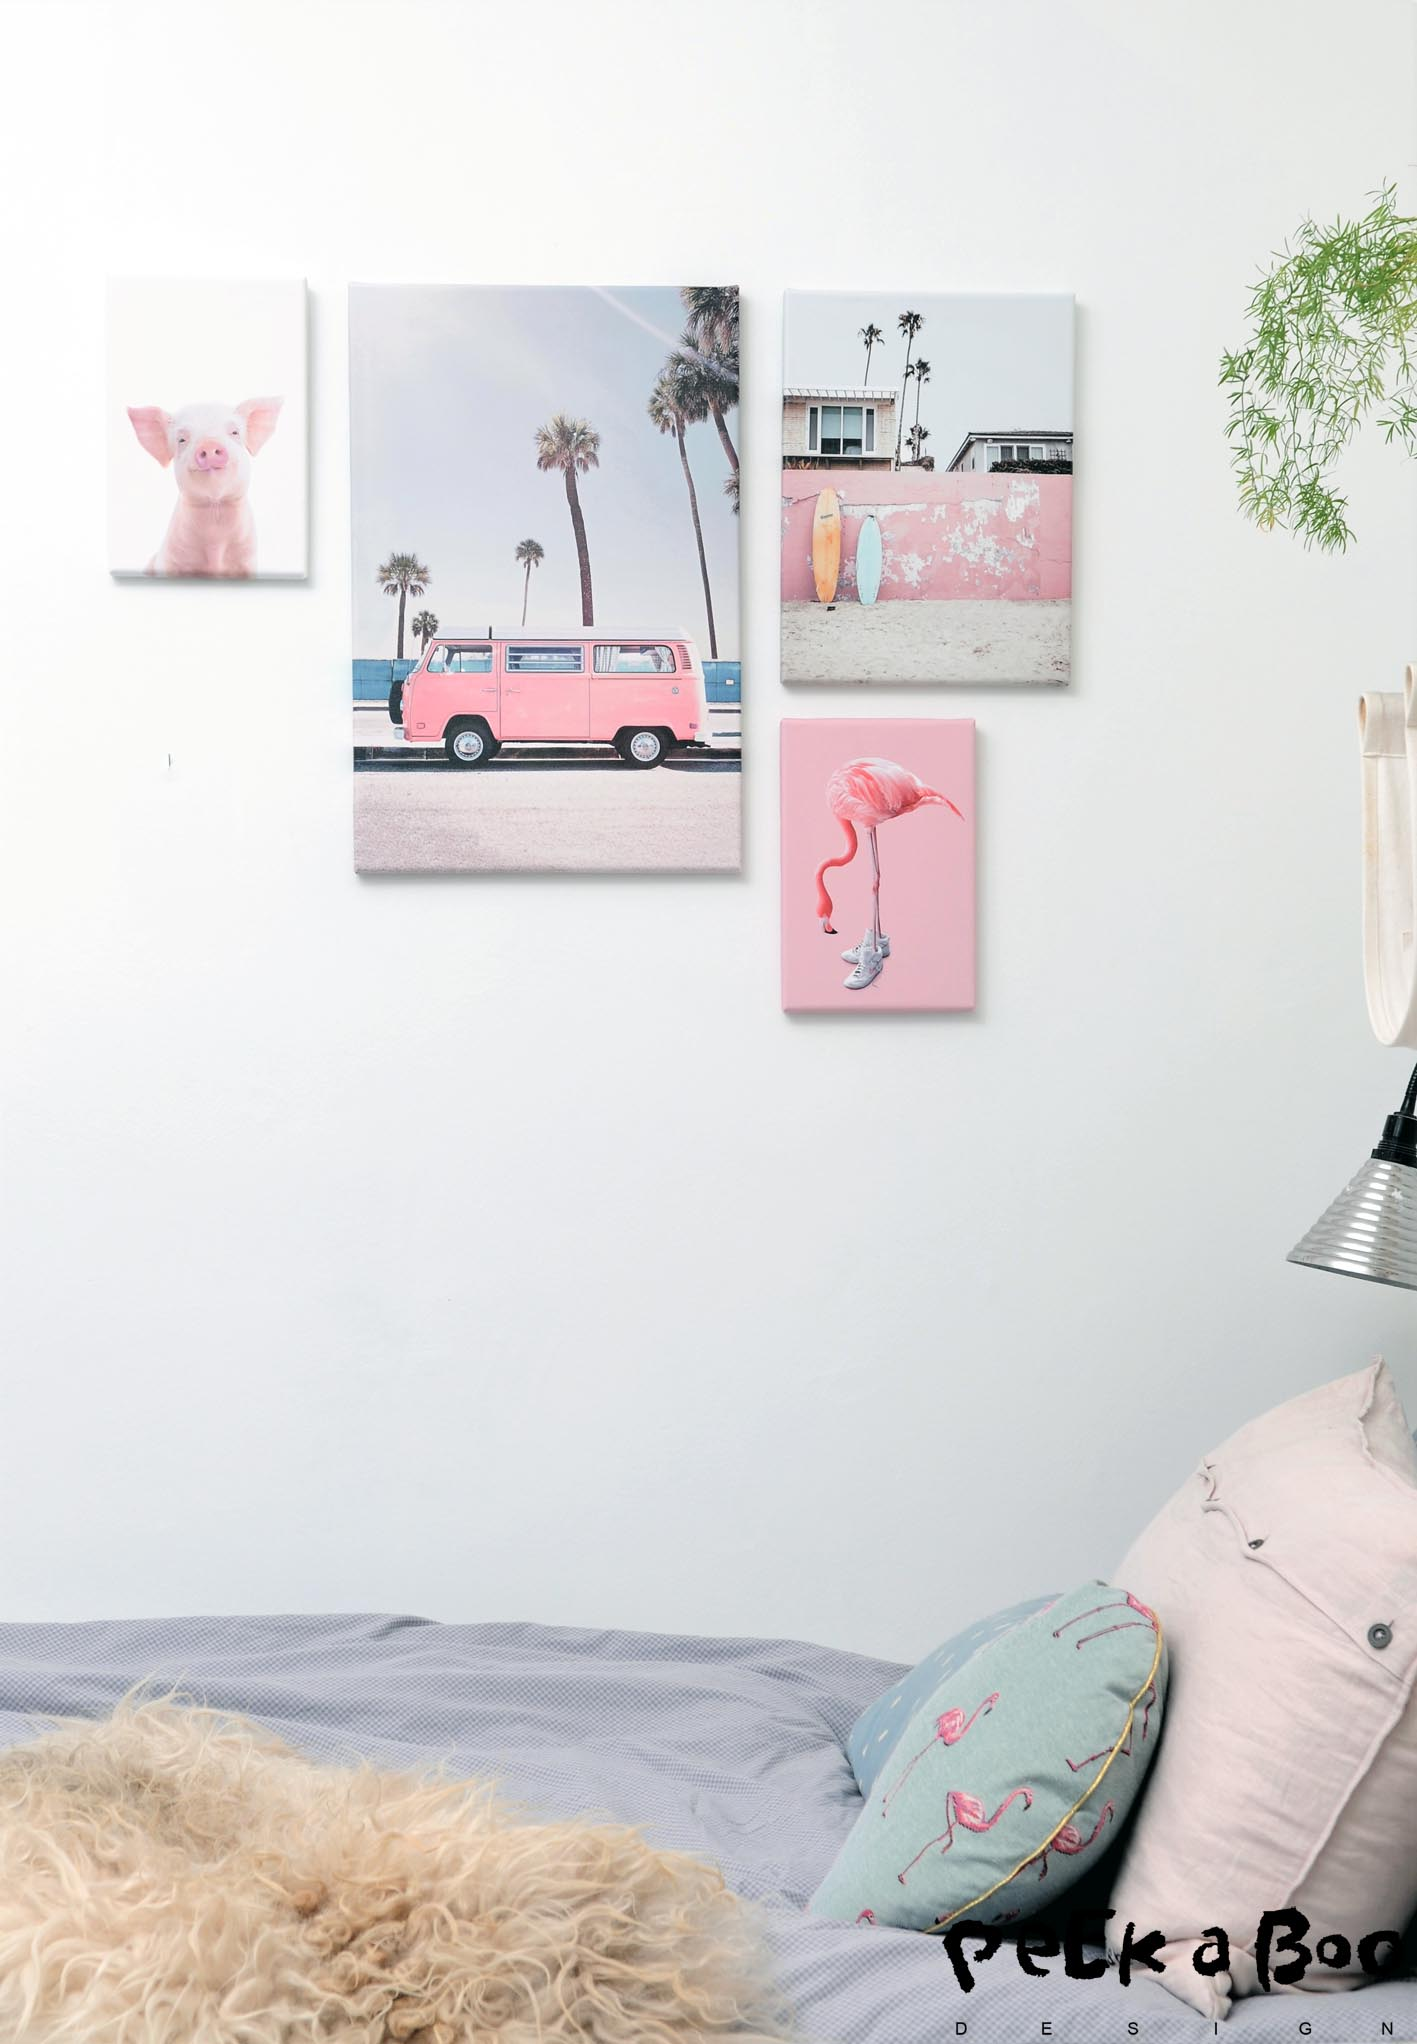 Floras pastel wall with photos on canvas.